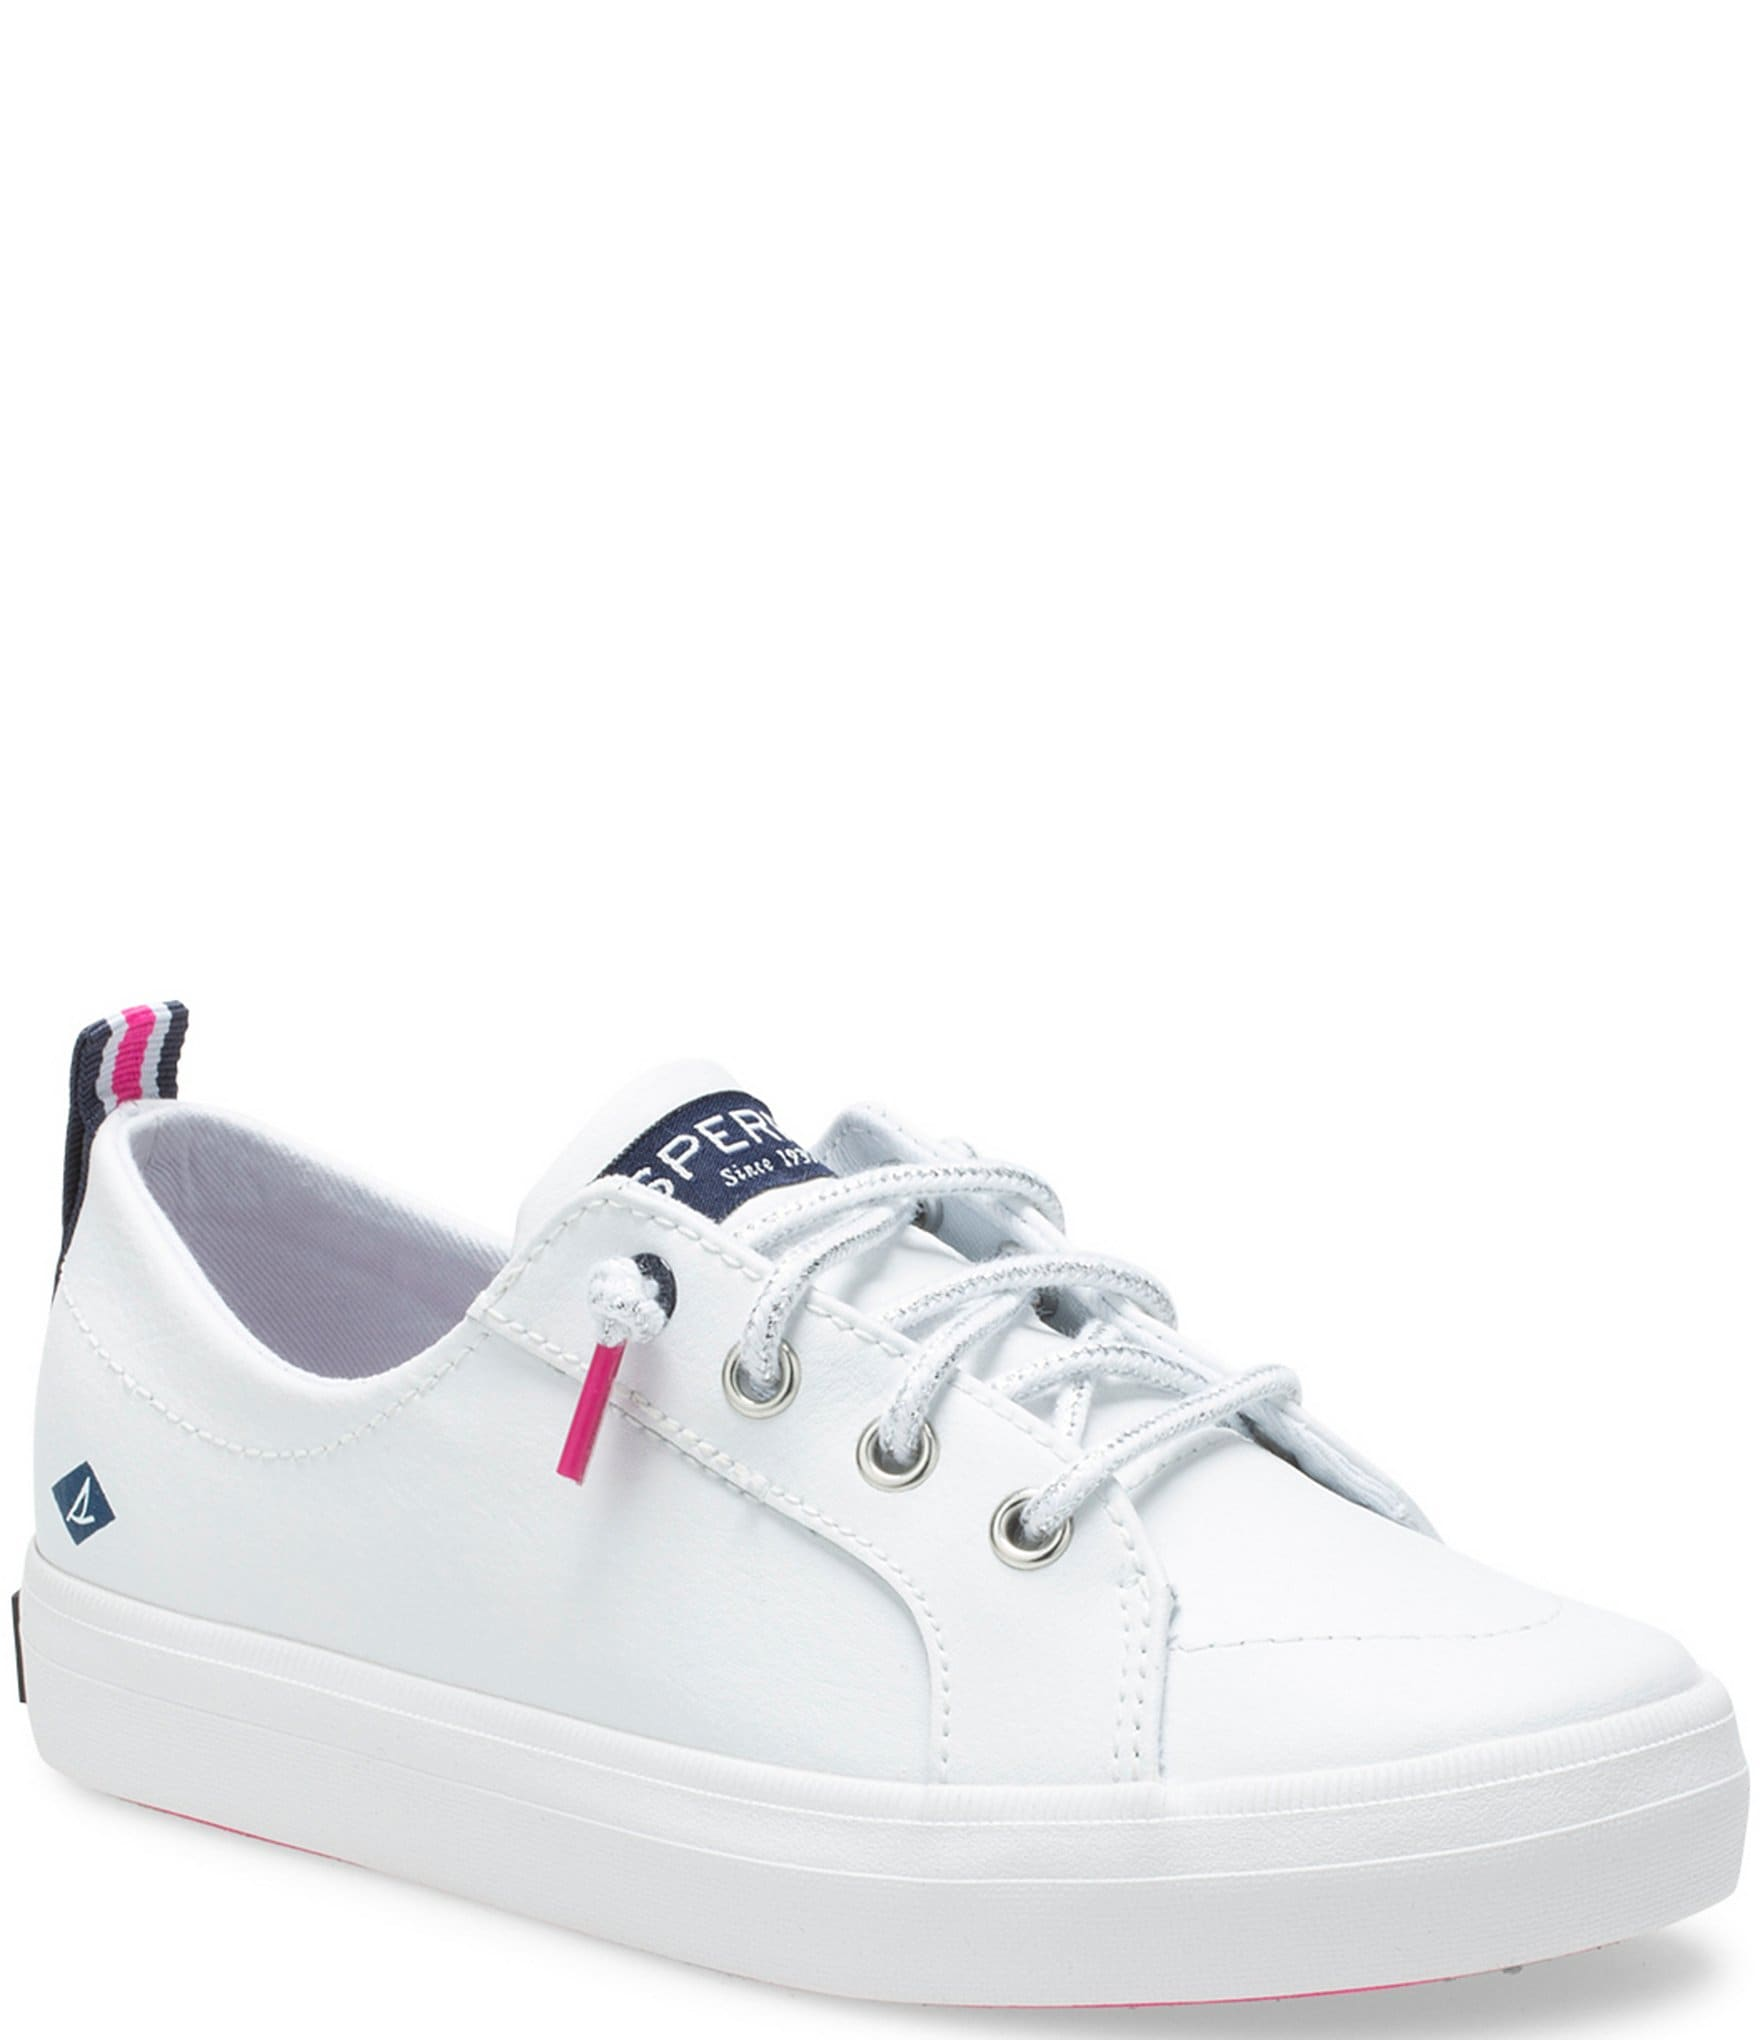 Sperry Girls' Crest Vibe Leather